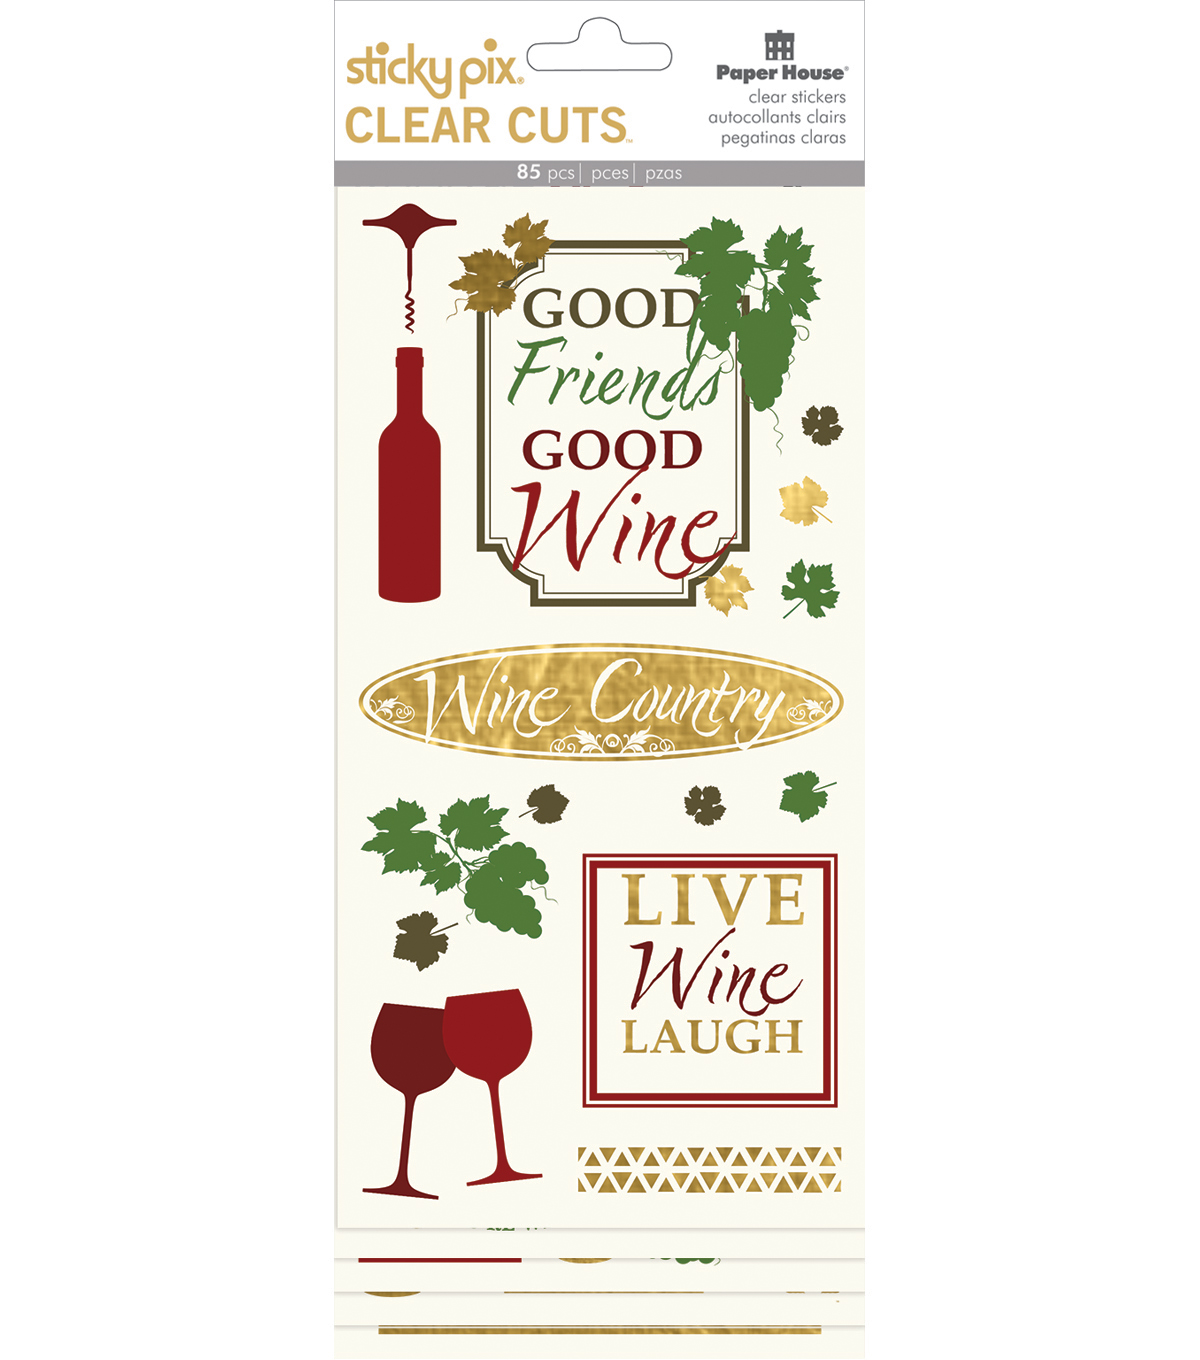 Paper House Sticky Pix Clear Cuts Pack of 85 Stickers-Wine Country